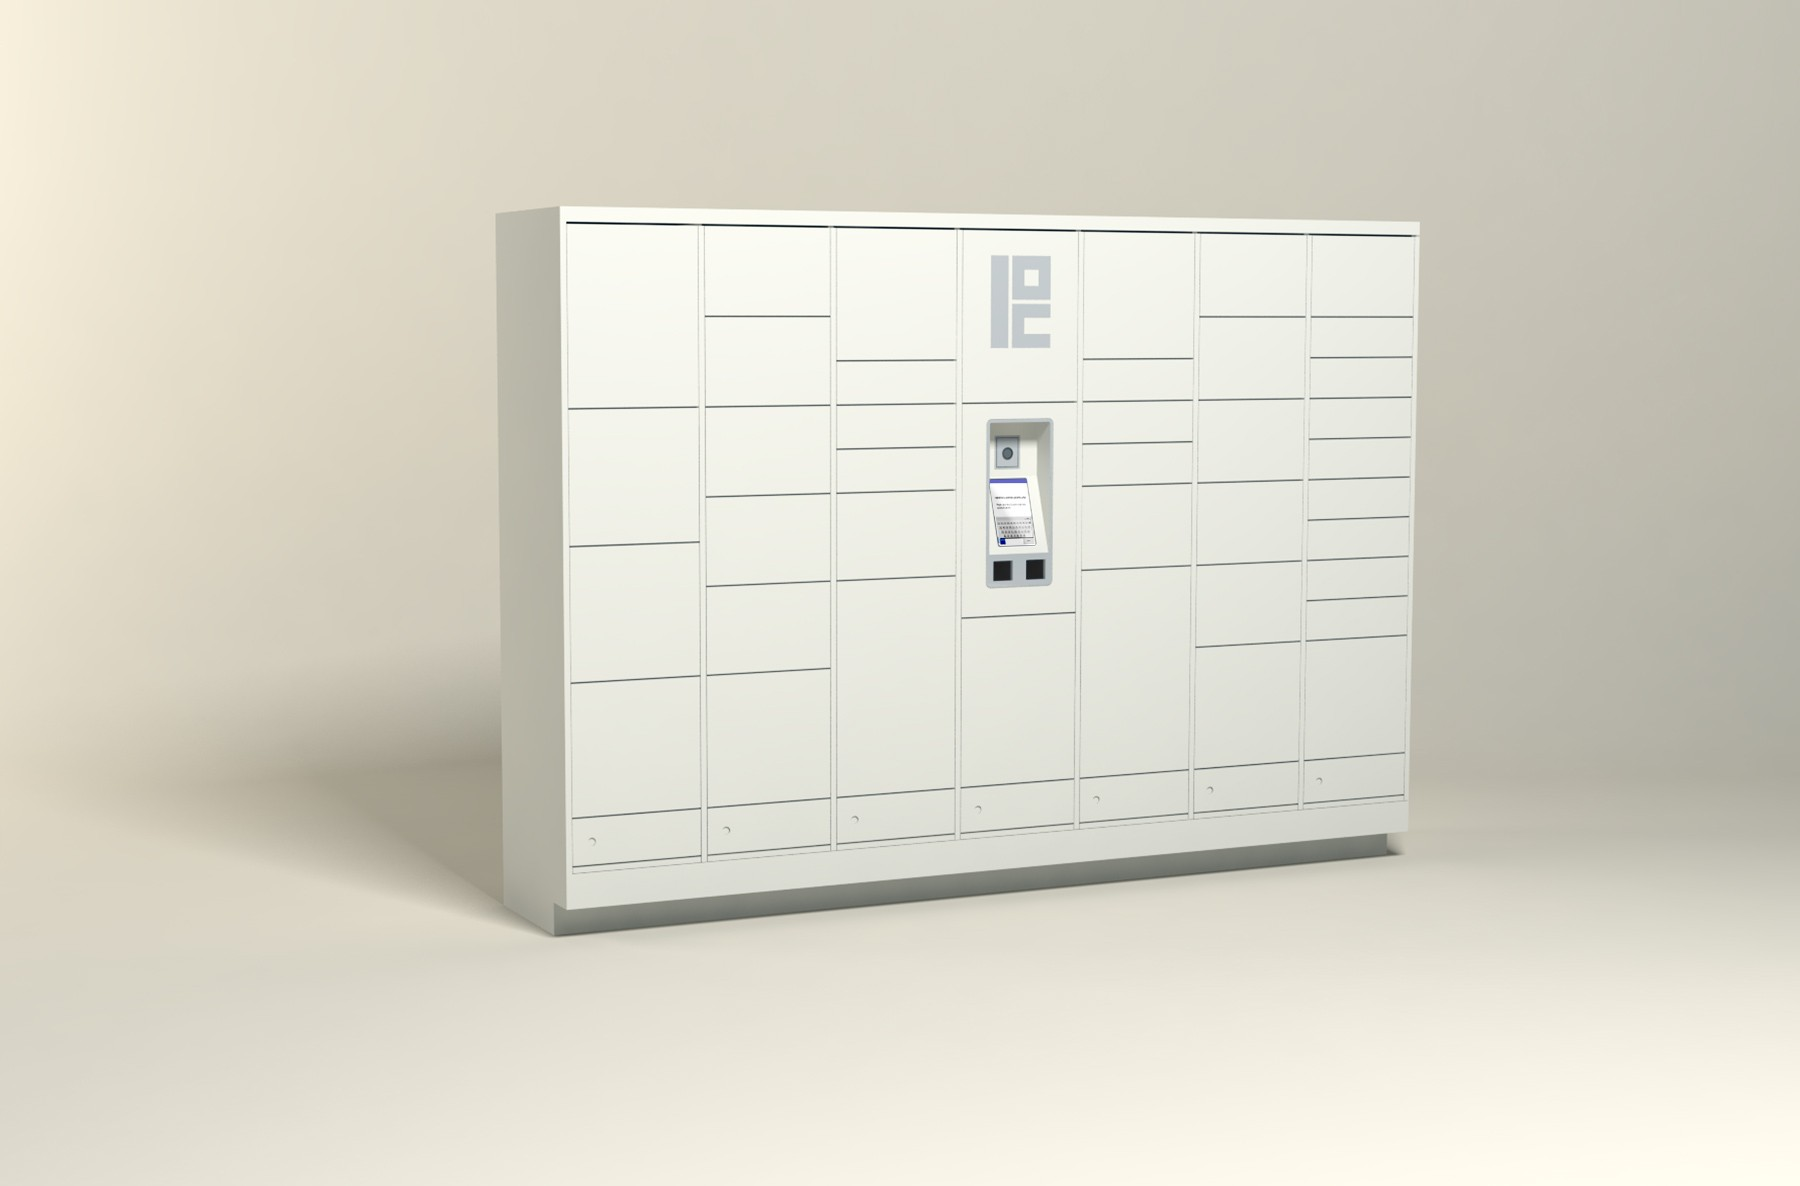 125 Unit - 40 Total Openings - Steel Smart Locker